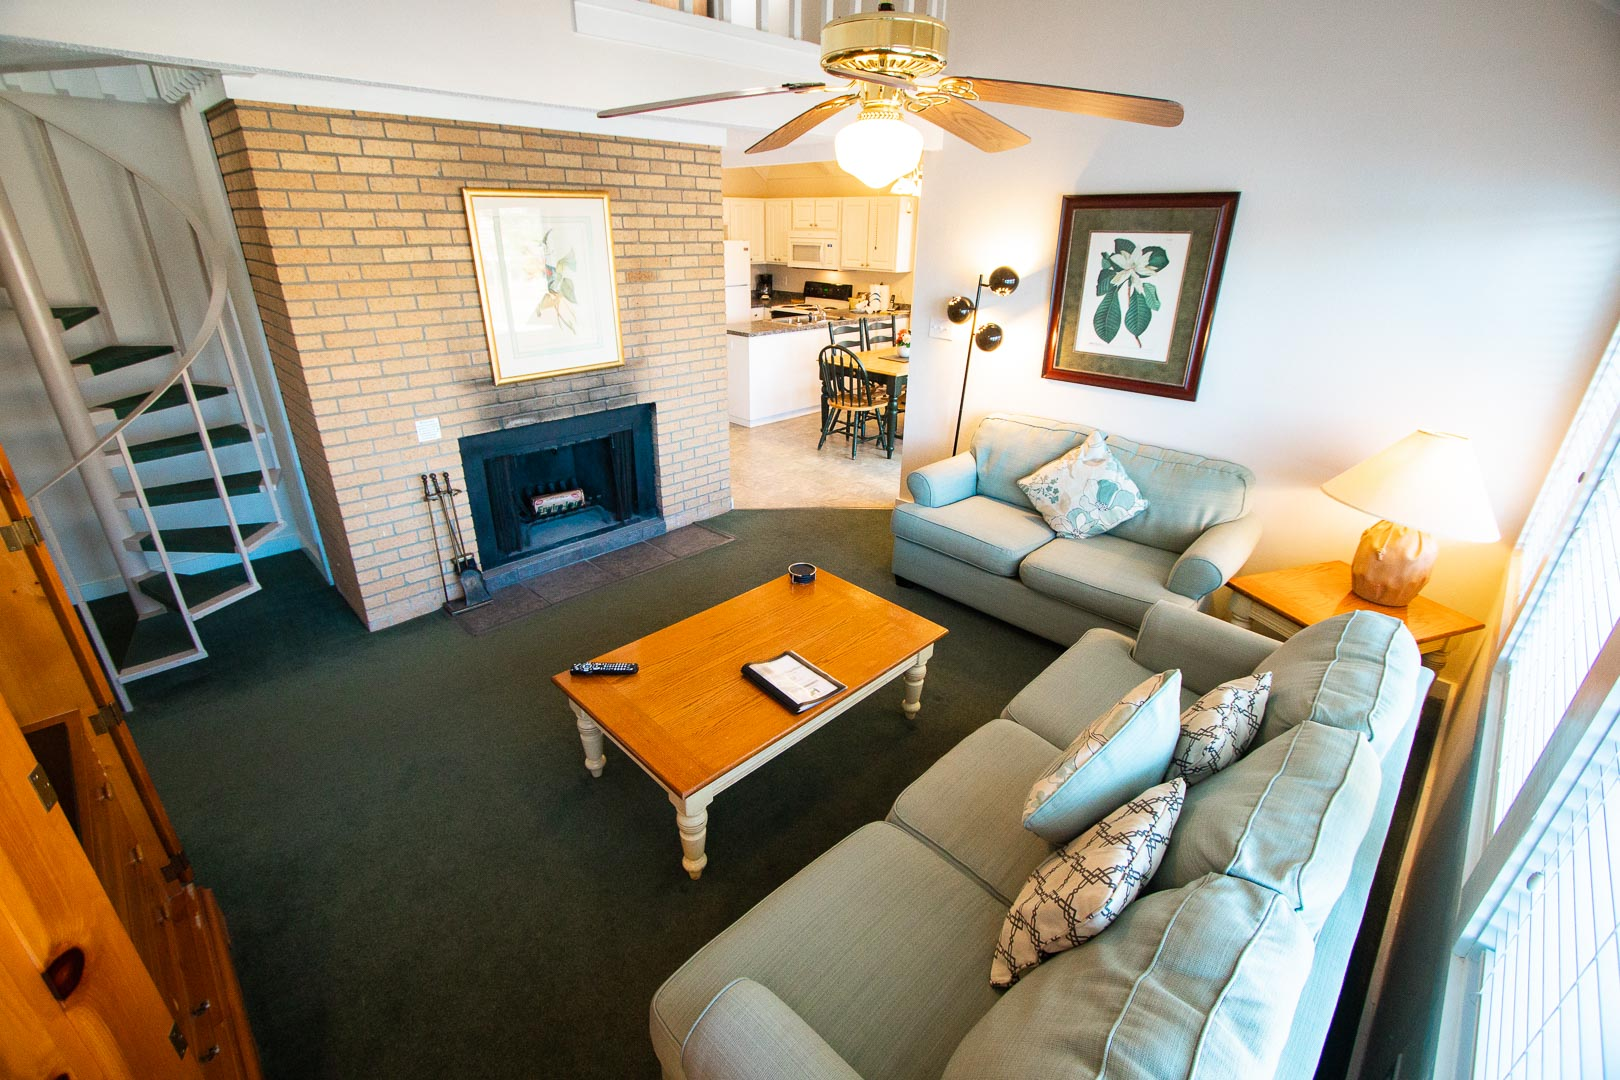 A view of the living room with staircase to the loft at VRI's Waterwood Townhomes in New Bern, North Carolina.